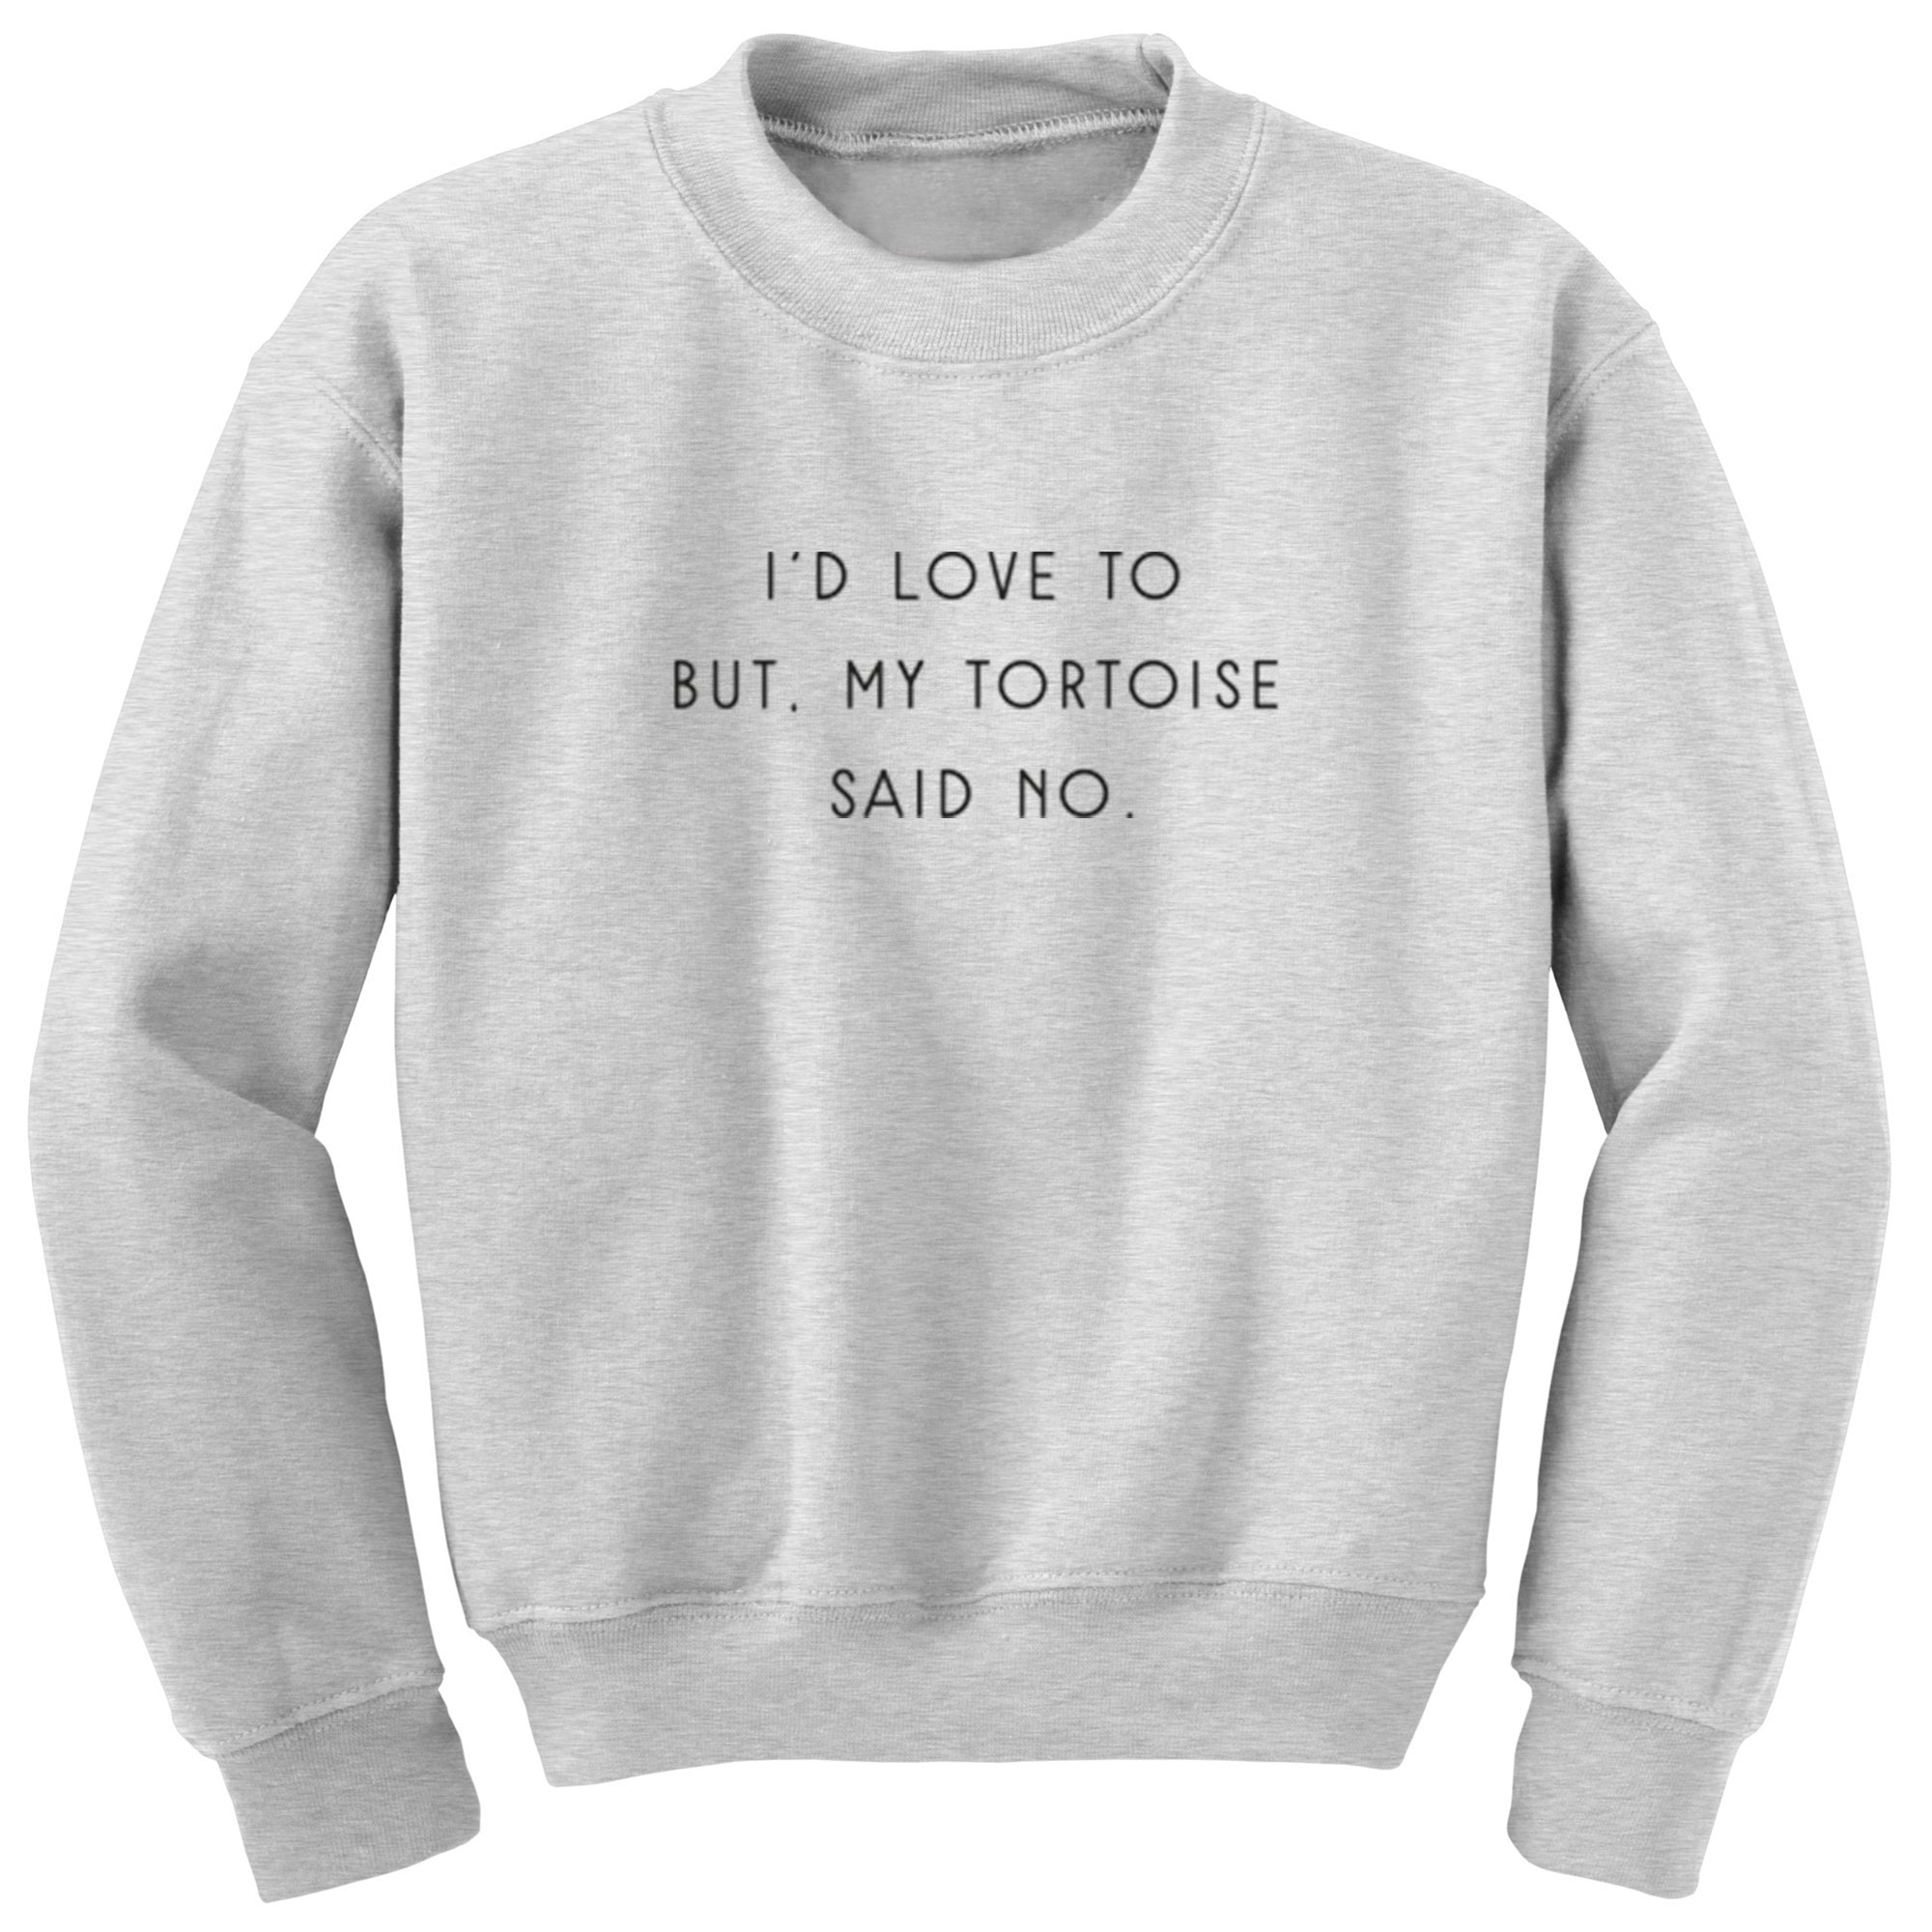 I'd Love To But, My Tortoise Said No Unisex Jumper S1074 - Illustrated Identity Ltd.